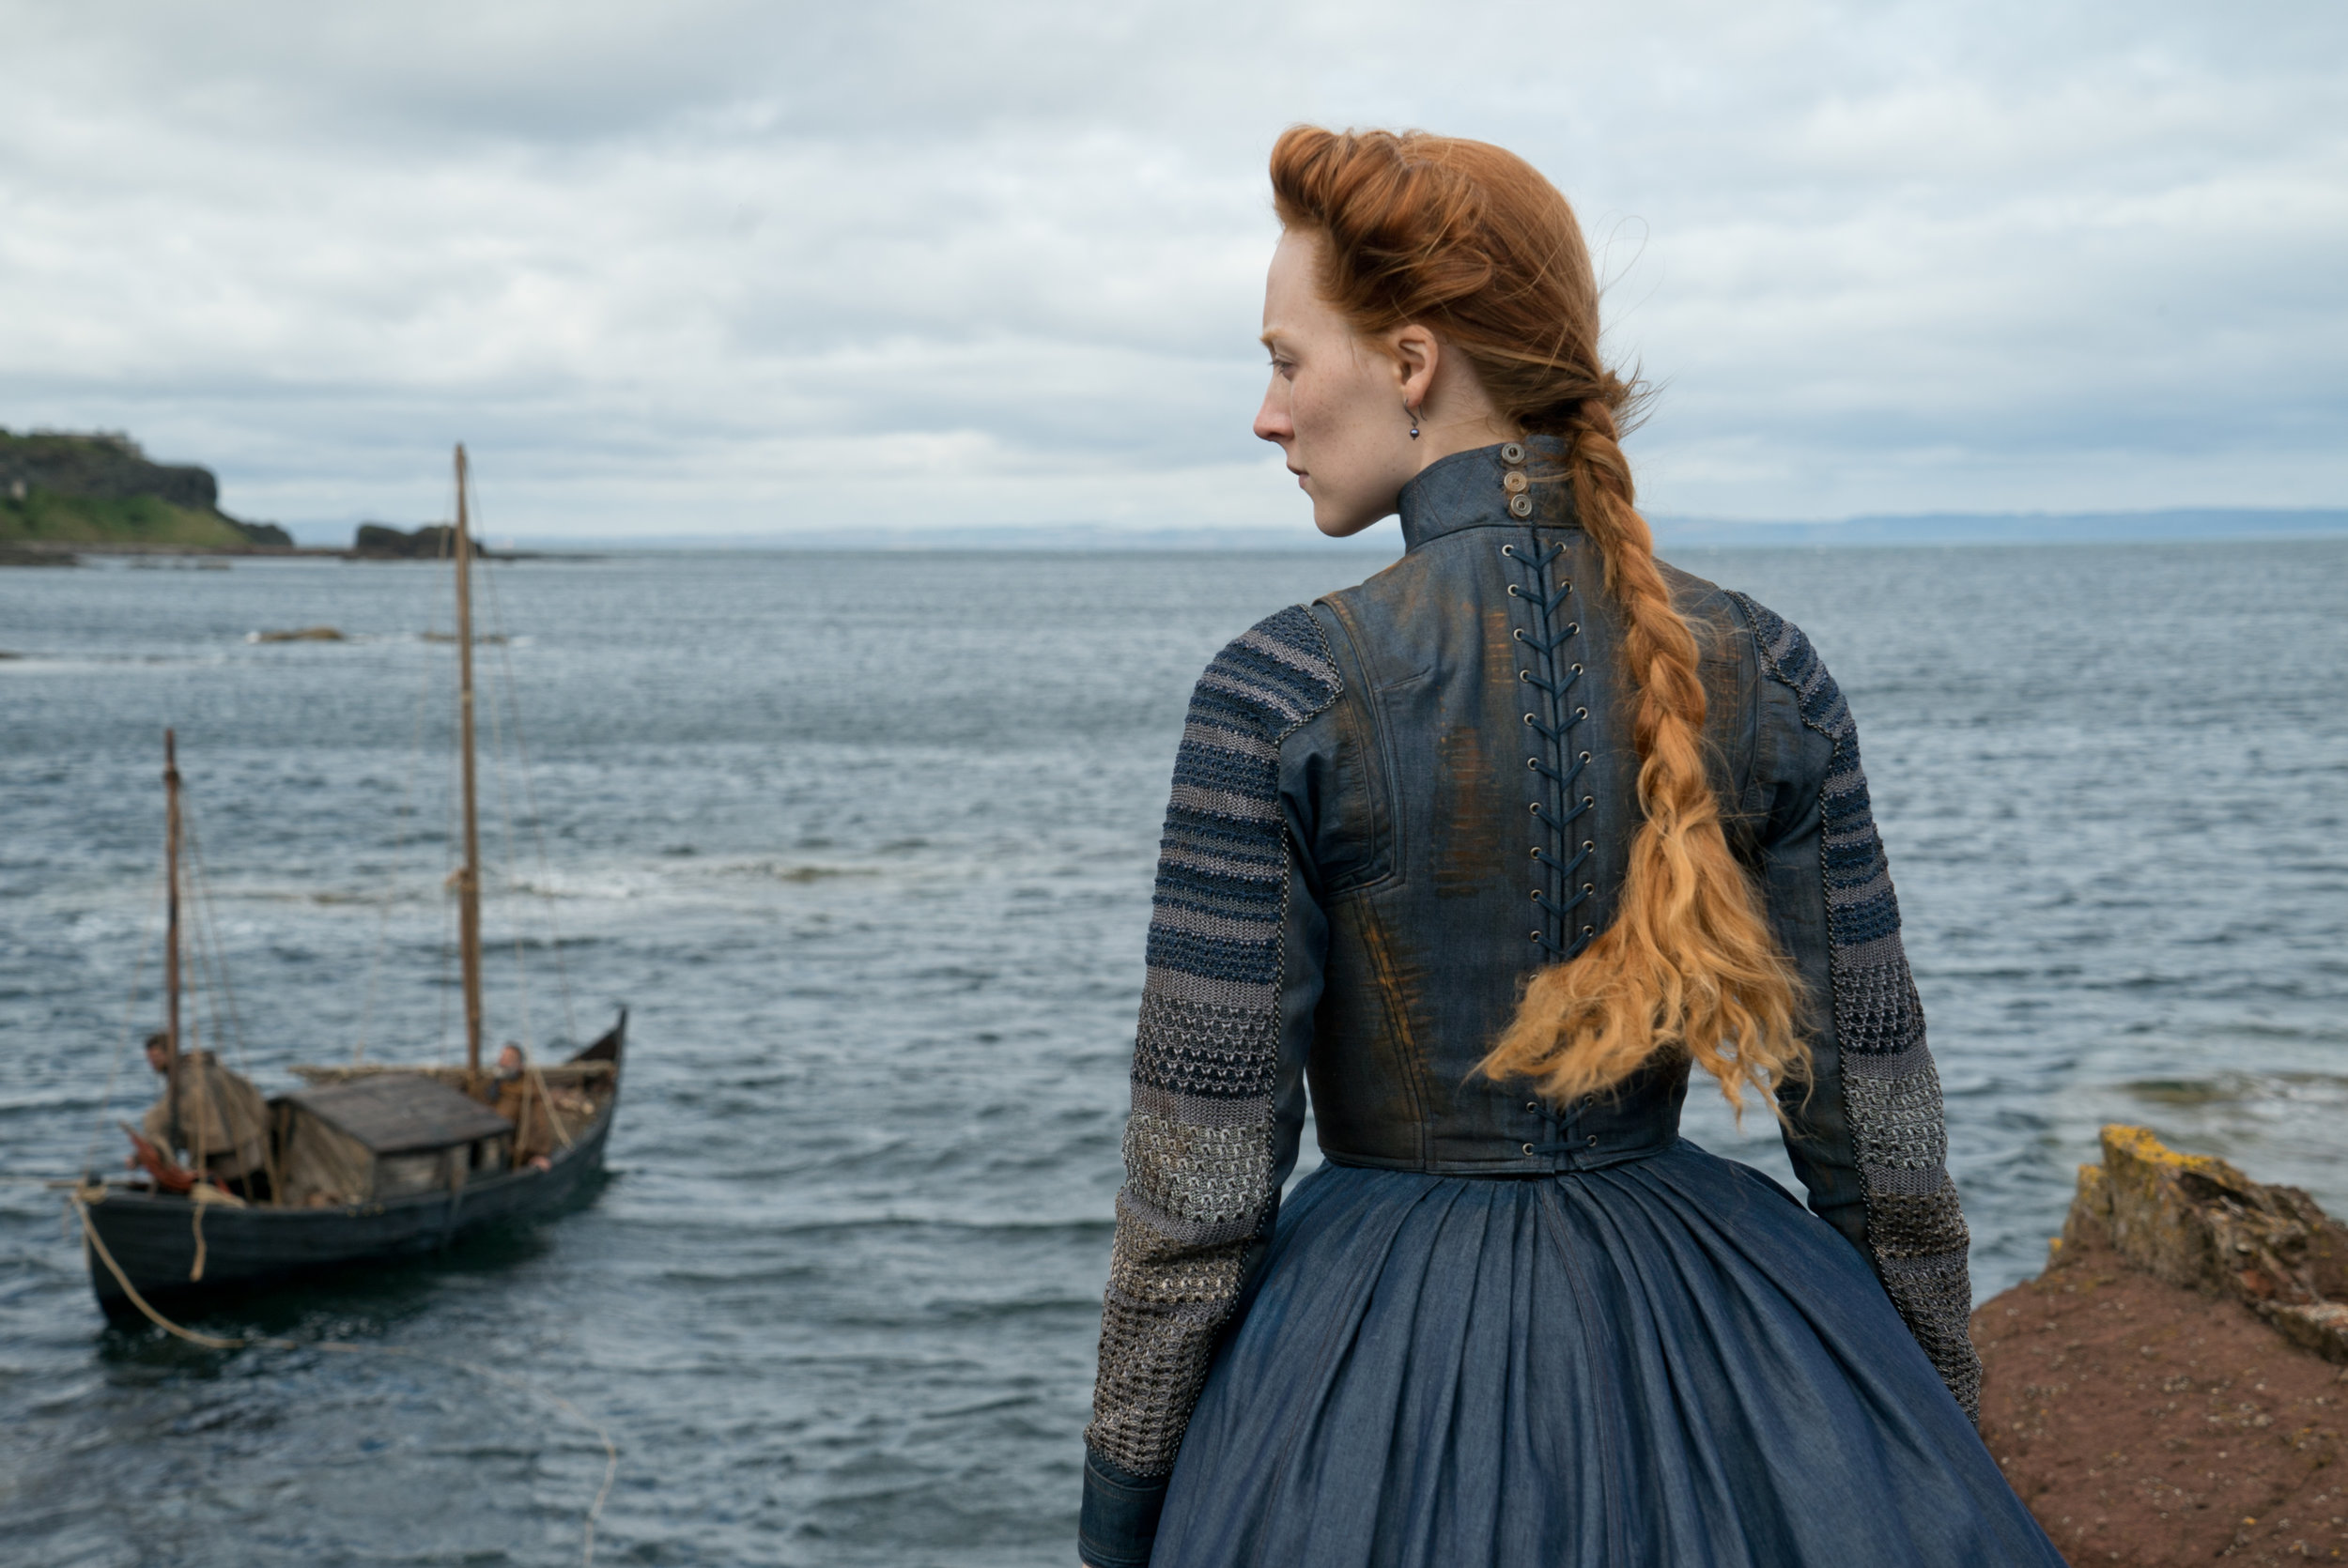 """Saoirse Ronan plays Mary Stuart, who lays claim to two crowns, in the drama """"Mary, Queen of Scots). (Photo by Liam Daniel, courtesy Focus Features)"""